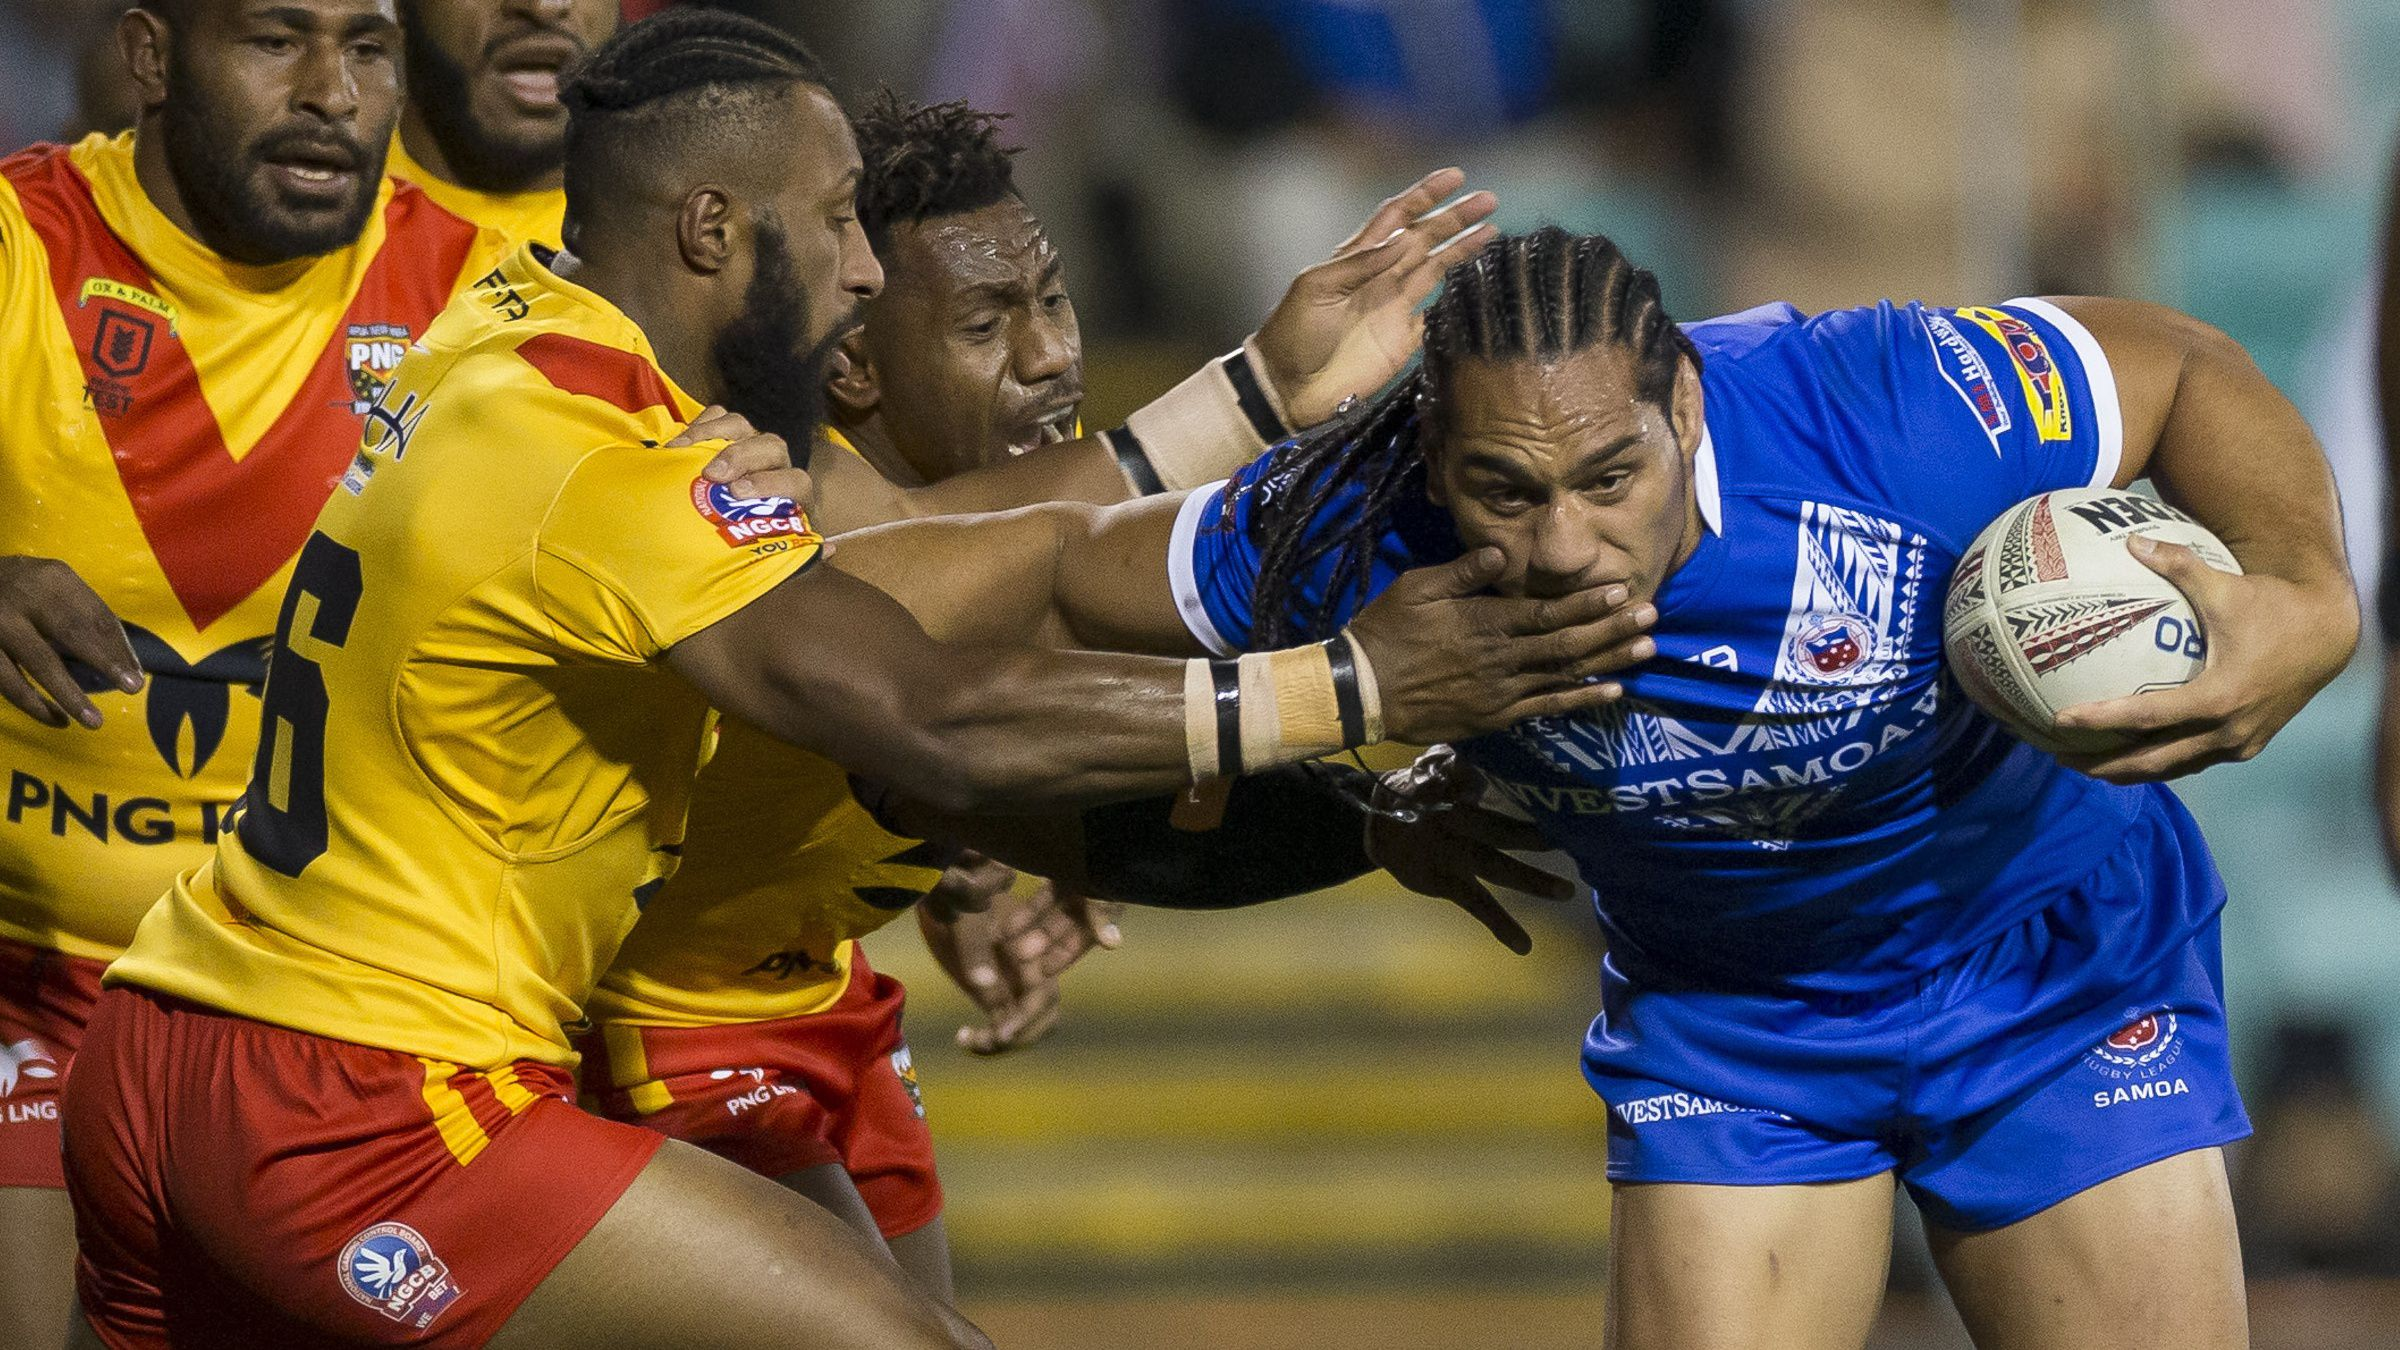 Samoan 'prodigy' scores 'unusual' try to seal win against PNG